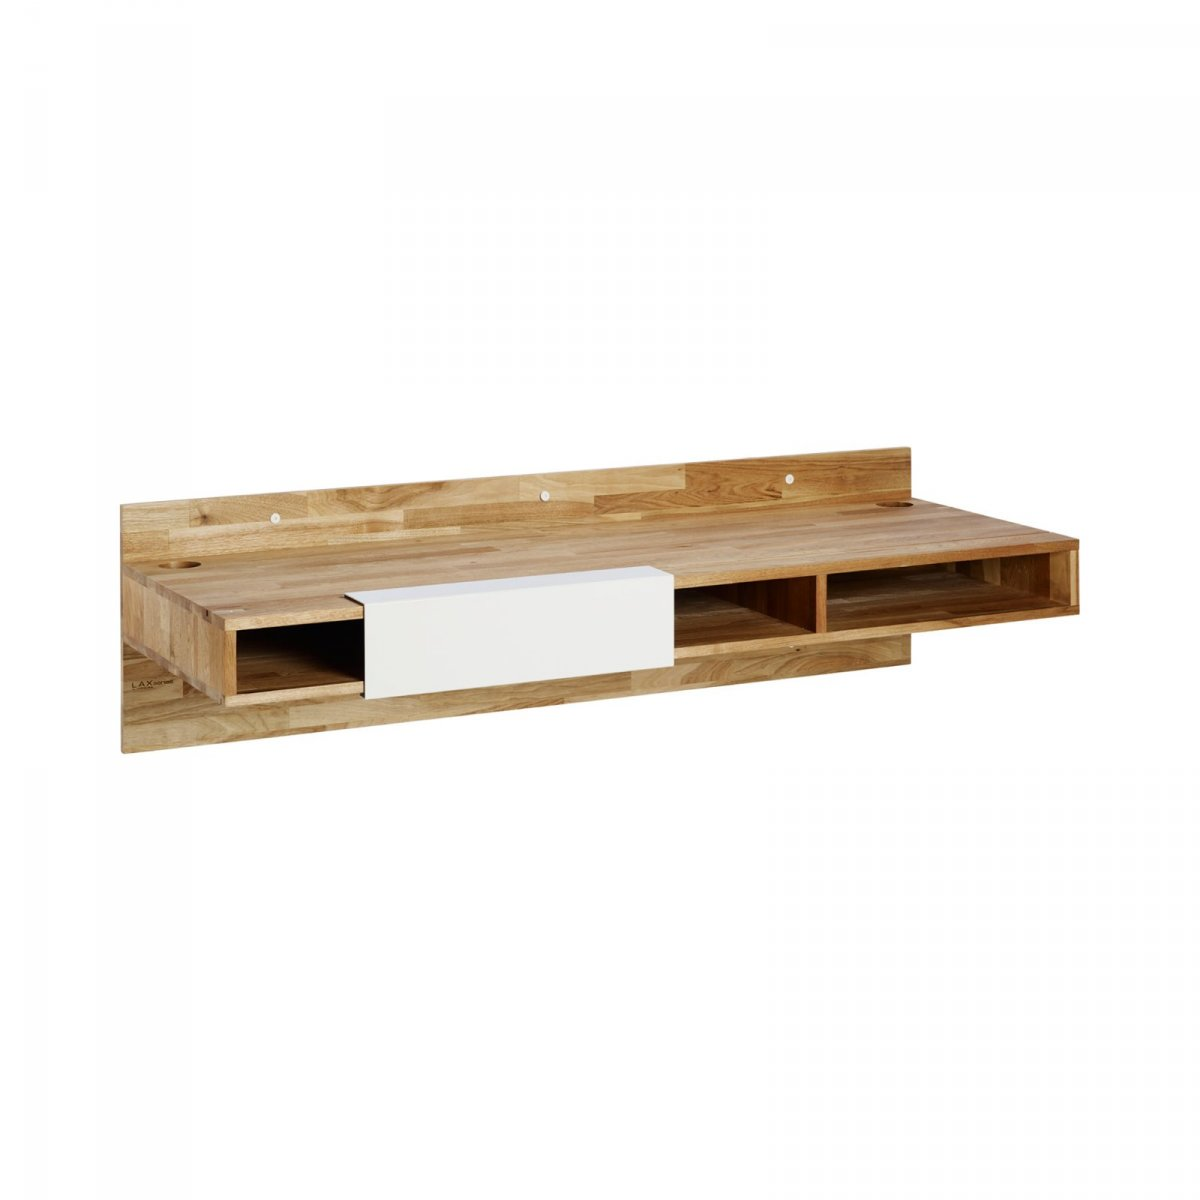 LAXseries Wall Mounted Desk.